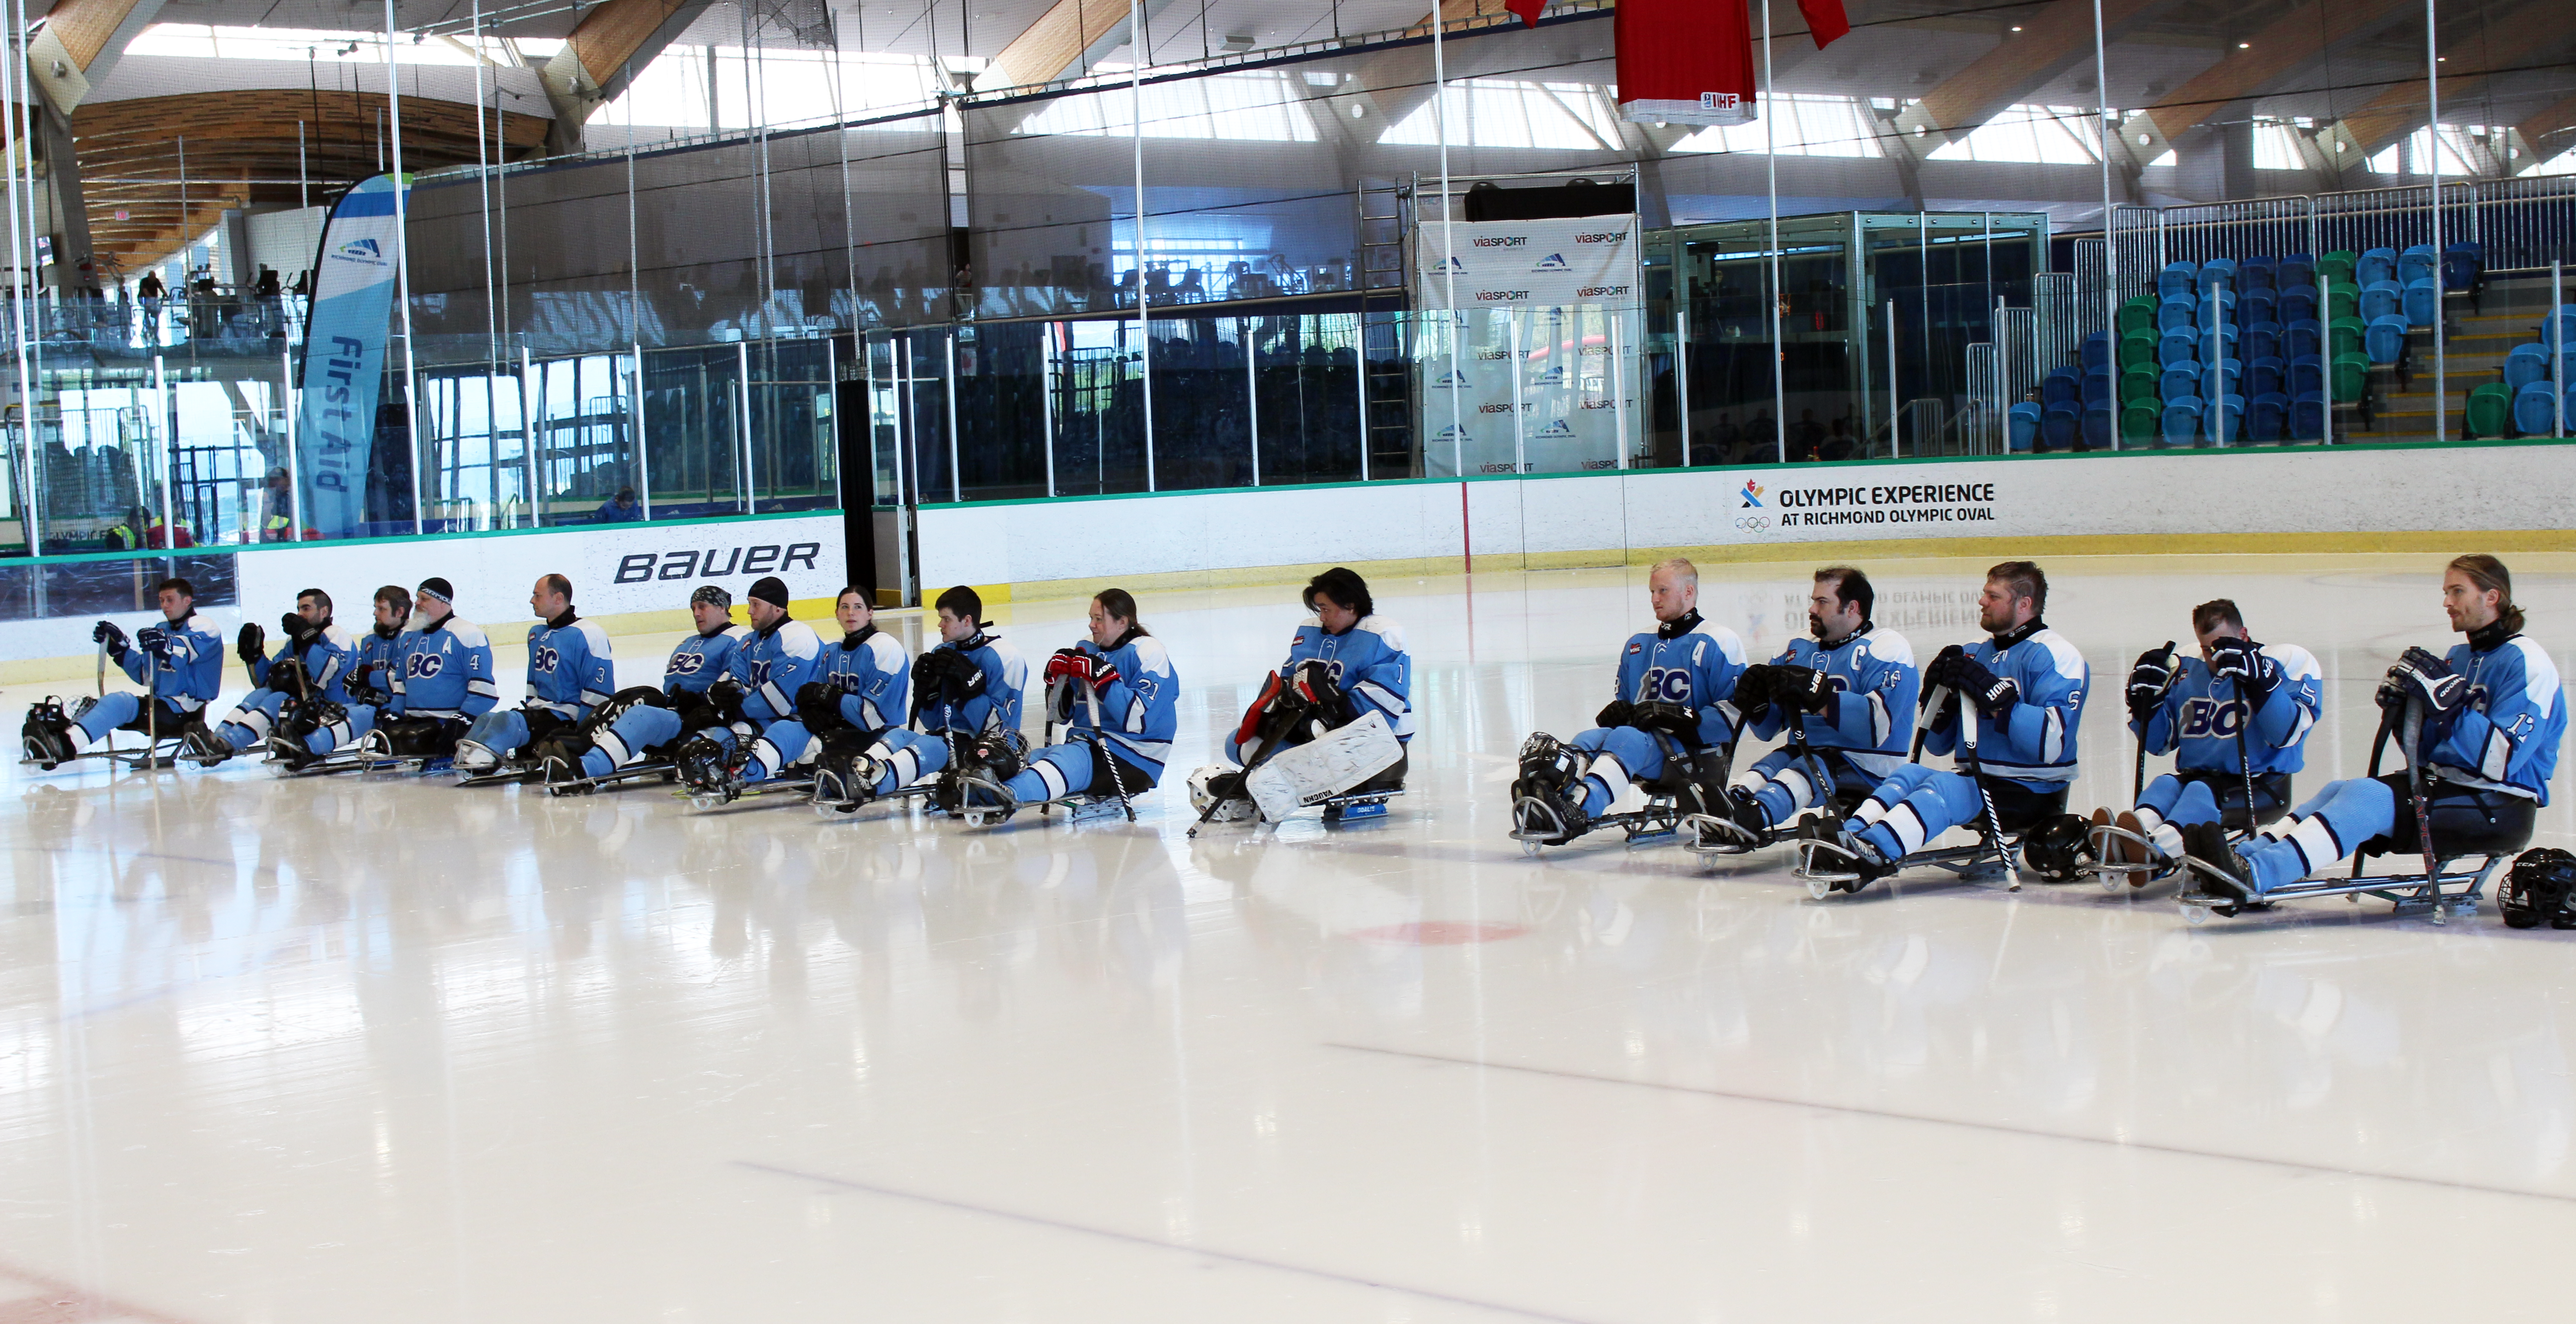 Sledge hockey team lined up on the rink